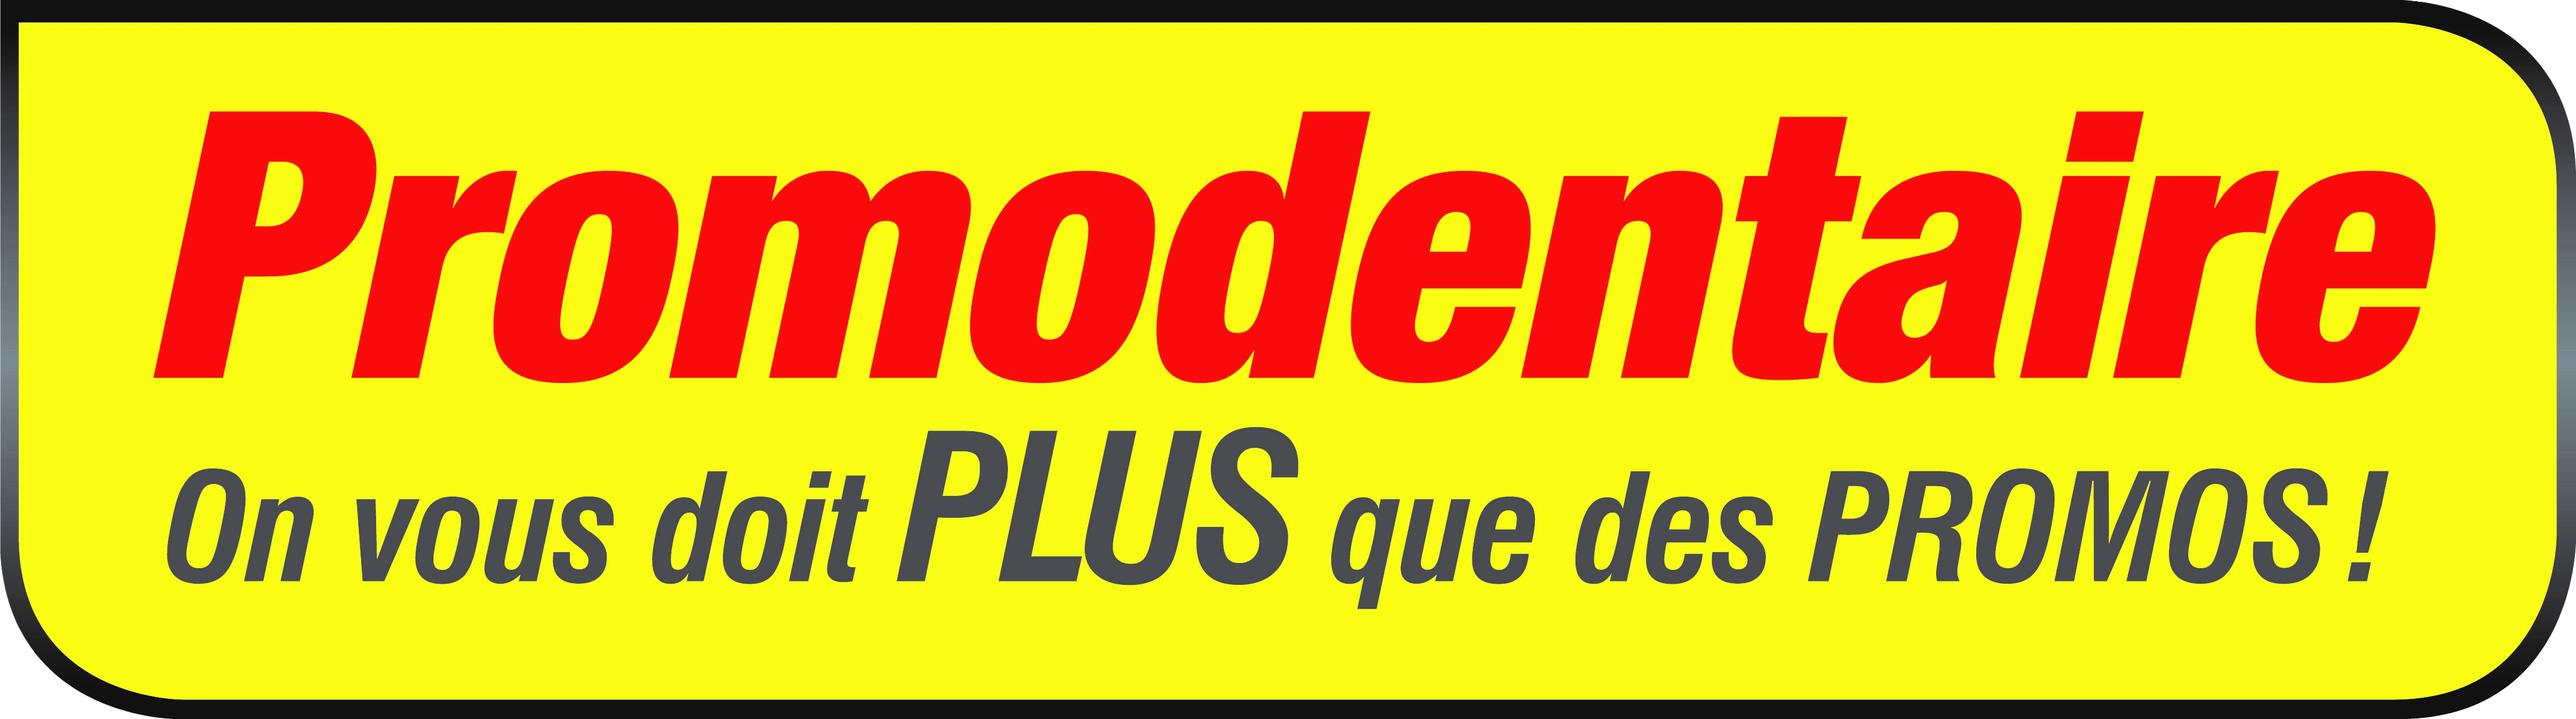 [PNG] Promodentaire logo 2